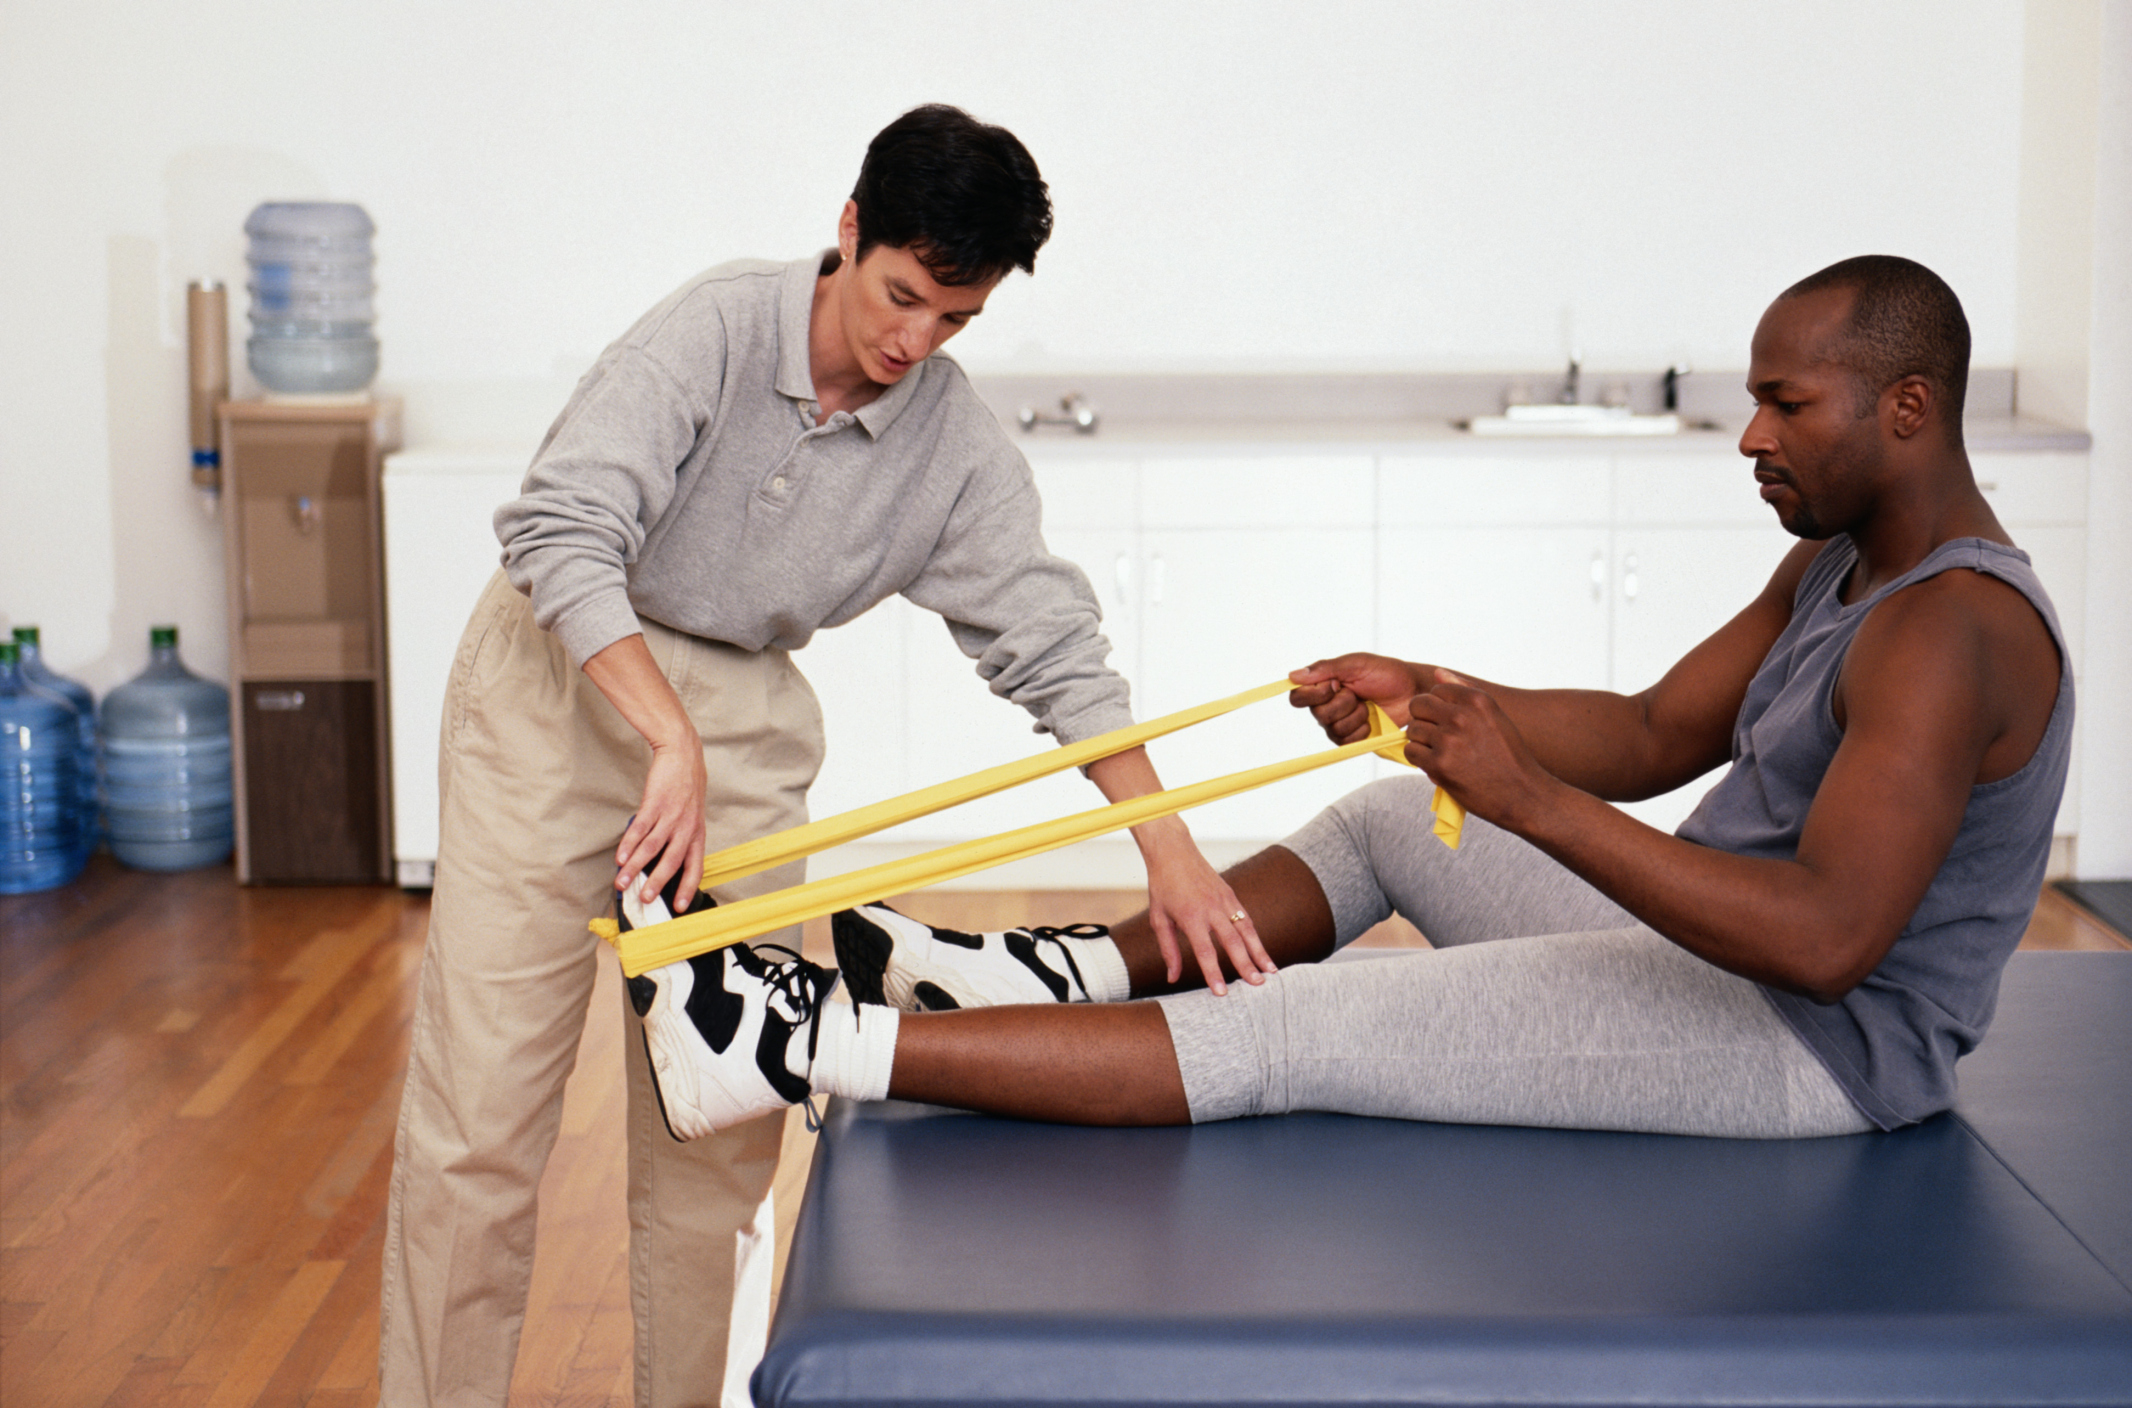 Cerebral palsy physical therapy - Cerebral Palsy Physical Therapy 57